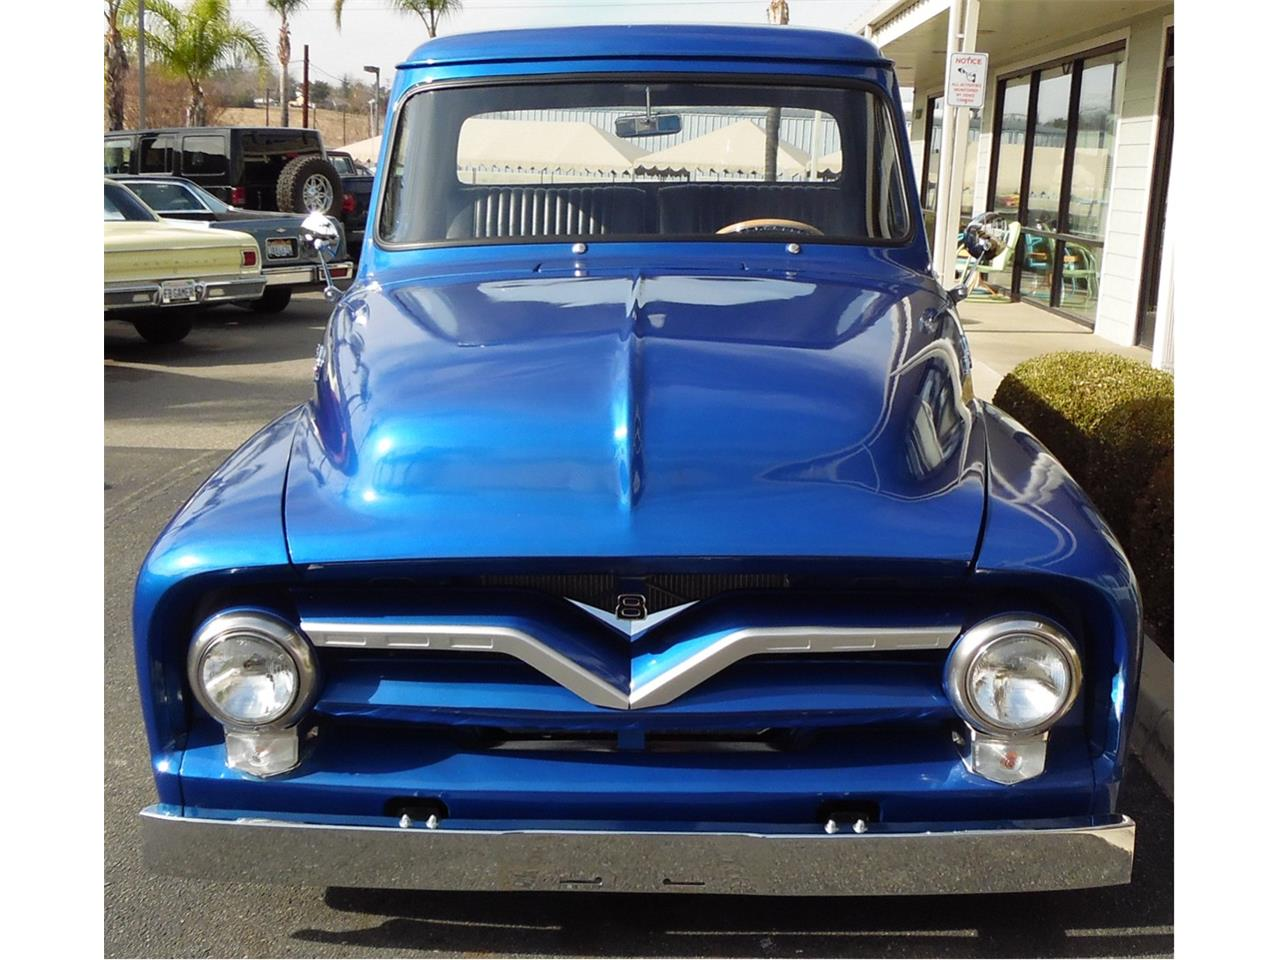 1956 Ford F100 For Sale Cc 1058715 1955 Power Steering Truck Large Picture Of 56 Located In Redlands California 2999500 Mowr